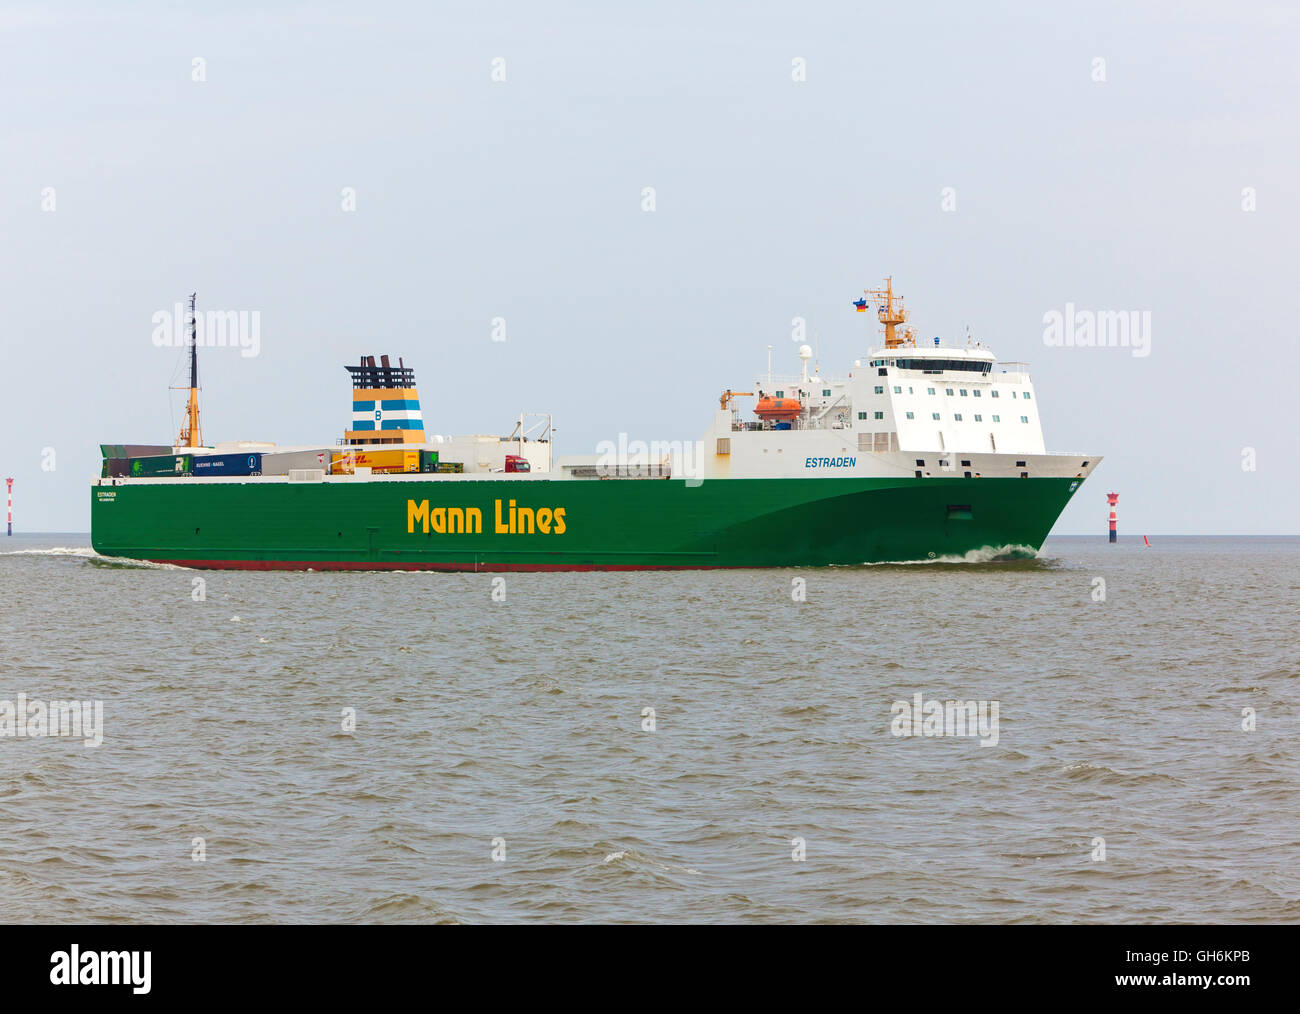 Ro-Ro cargo ship ESTRADEN, operated by Mann Lines, at Weser estuary - Stock Image